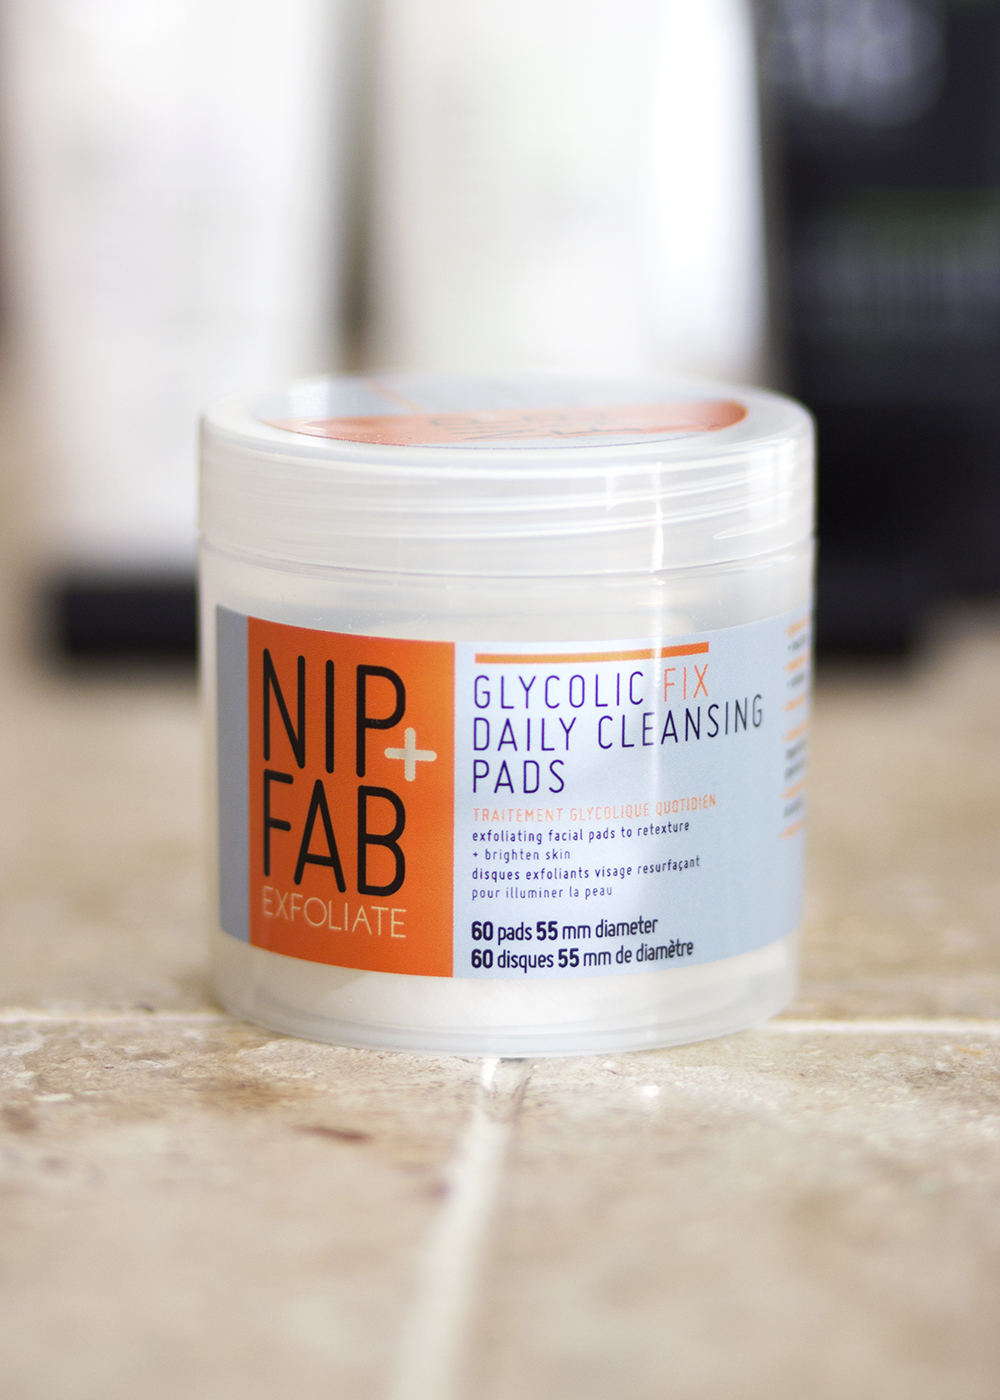 Rodial and Nip + Fab Beauty - Nip + Fab Exfoliate Glycolic Fix Daily Cleansing Pads - Rodial Nip Fab Beauty Review